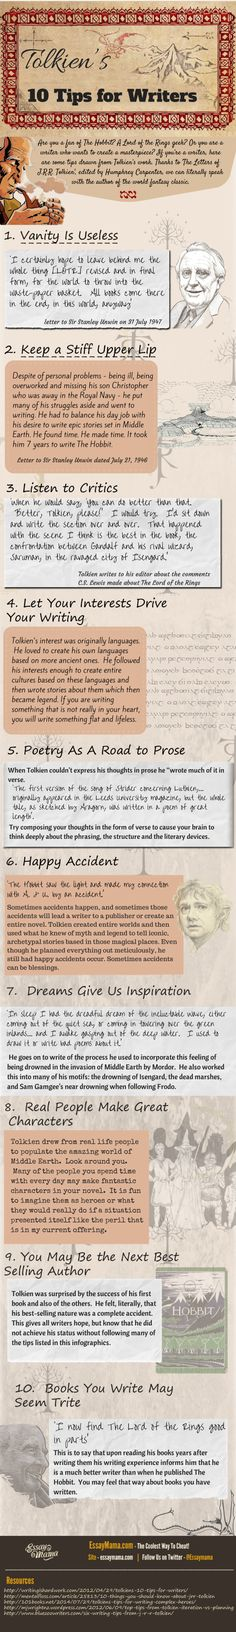 Tolkiens-10-Tips-for-Writers